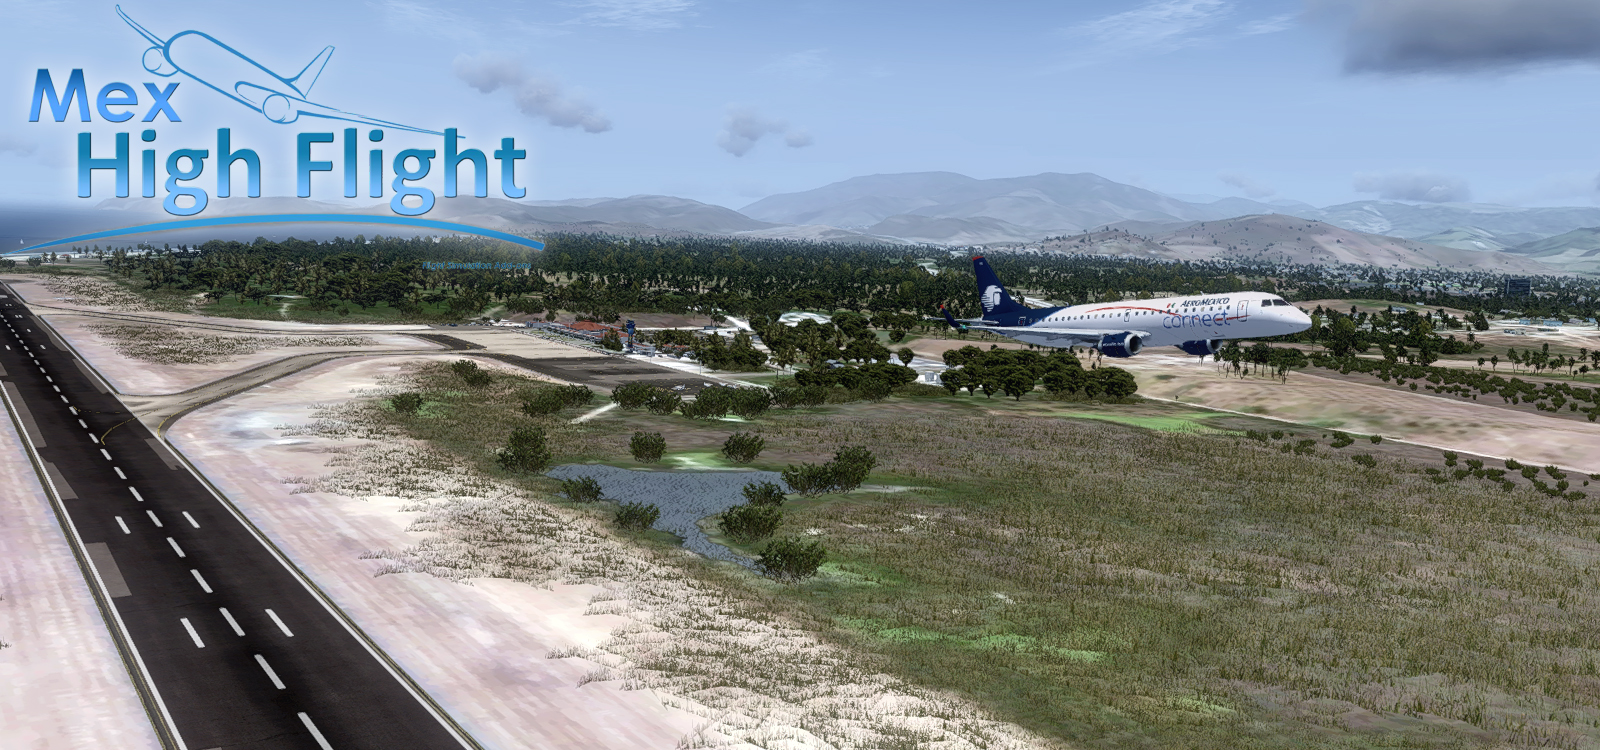 MEX HIGH FLIGHT - MMZH IXTAPA-ZIHUATANEJO INTERNATIONAL AIRPORT FSX P3D